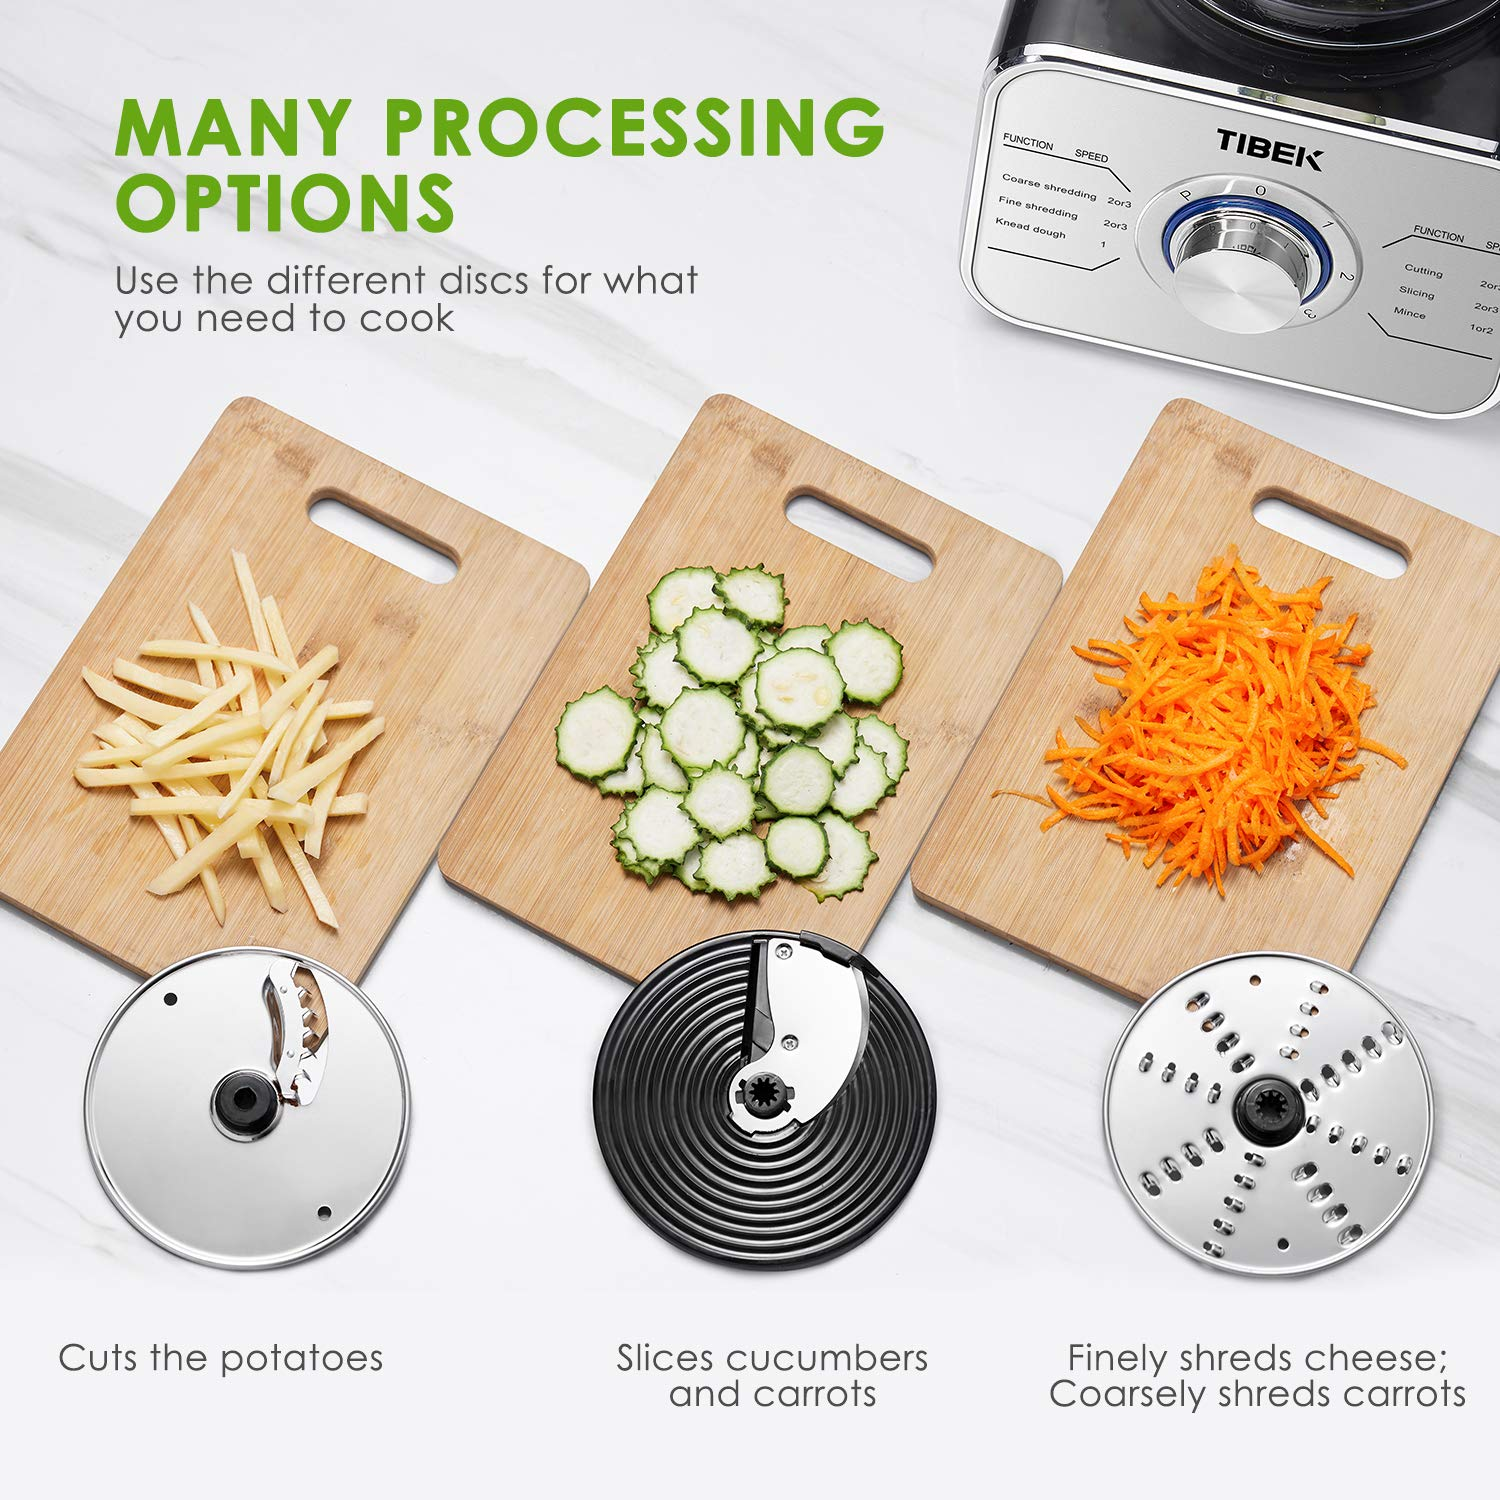 Food Processor 12-Cup, Multi-Function Food Processor 6 Main Functions with Chopper Blade, Dough Blade, Shredder, Slicing Attachments, 3 Speed 600W Powerful Processor, Silver by Tibek (Image #4)